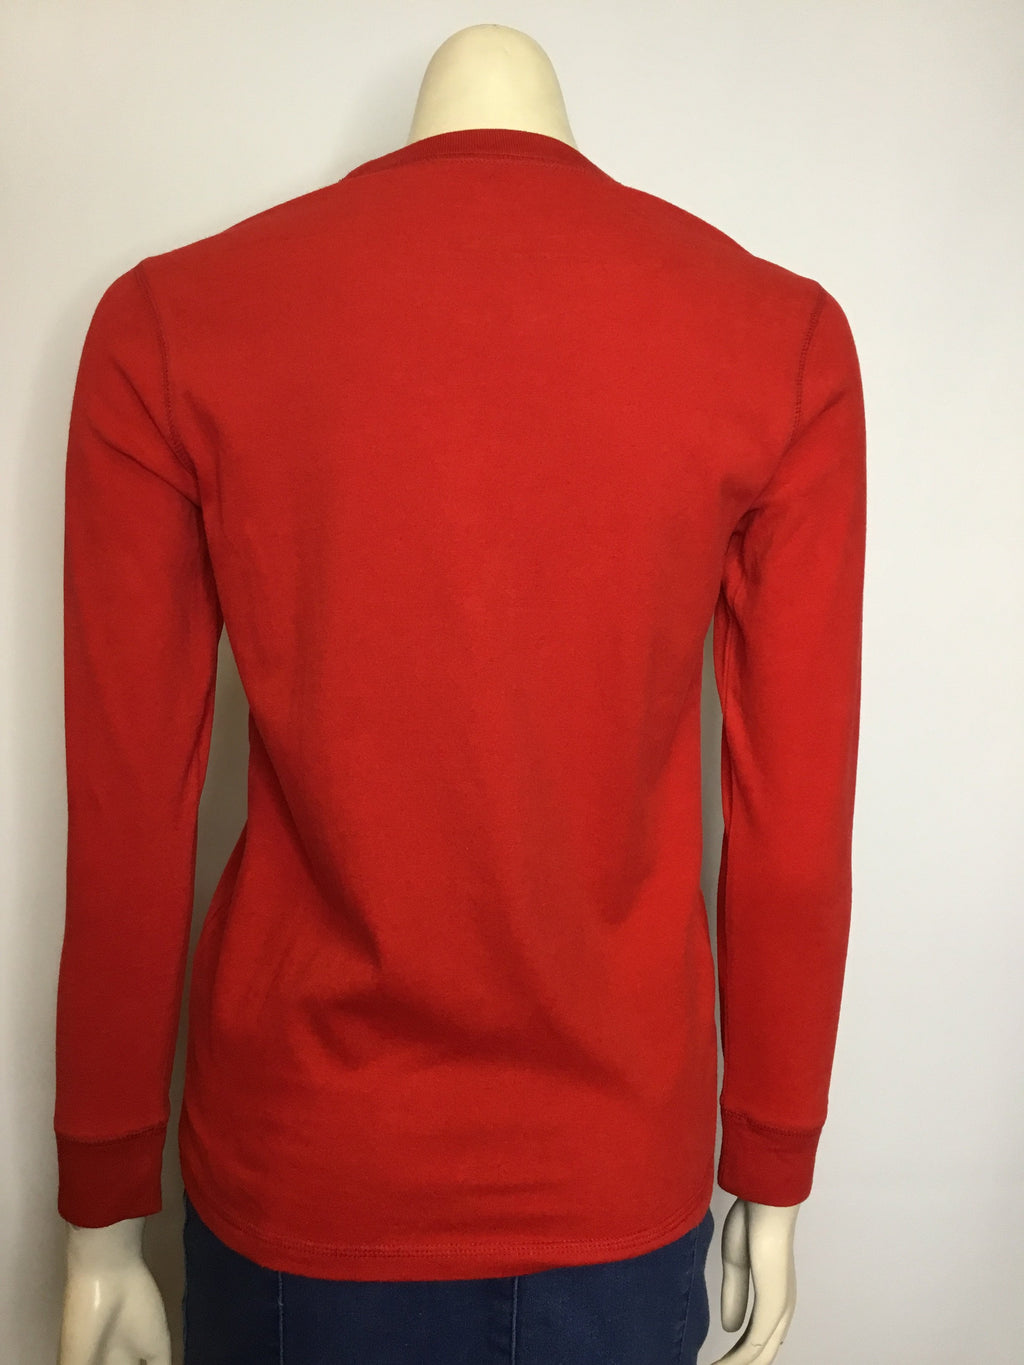 Red Tommy Hilfiger Top